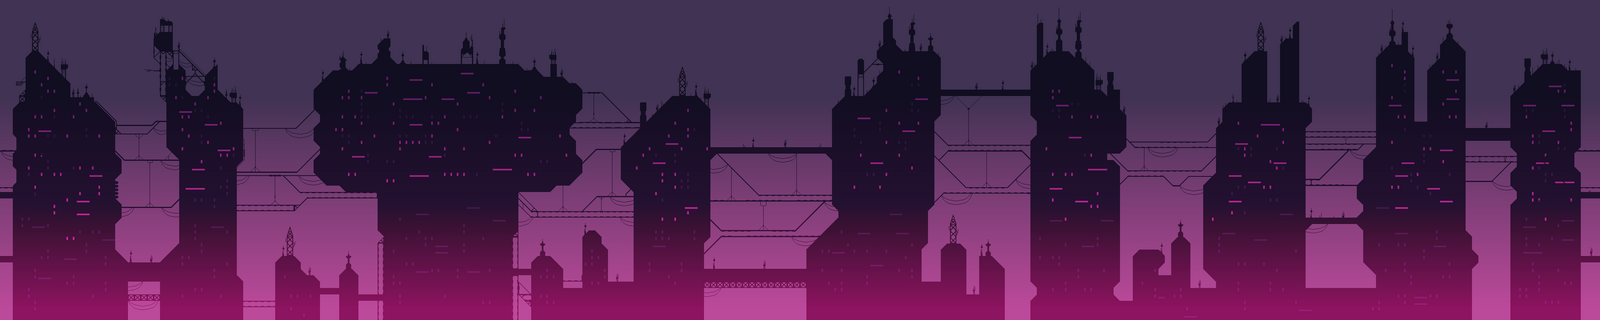 Cyberpunk pixel art city skyline by Dulcahn